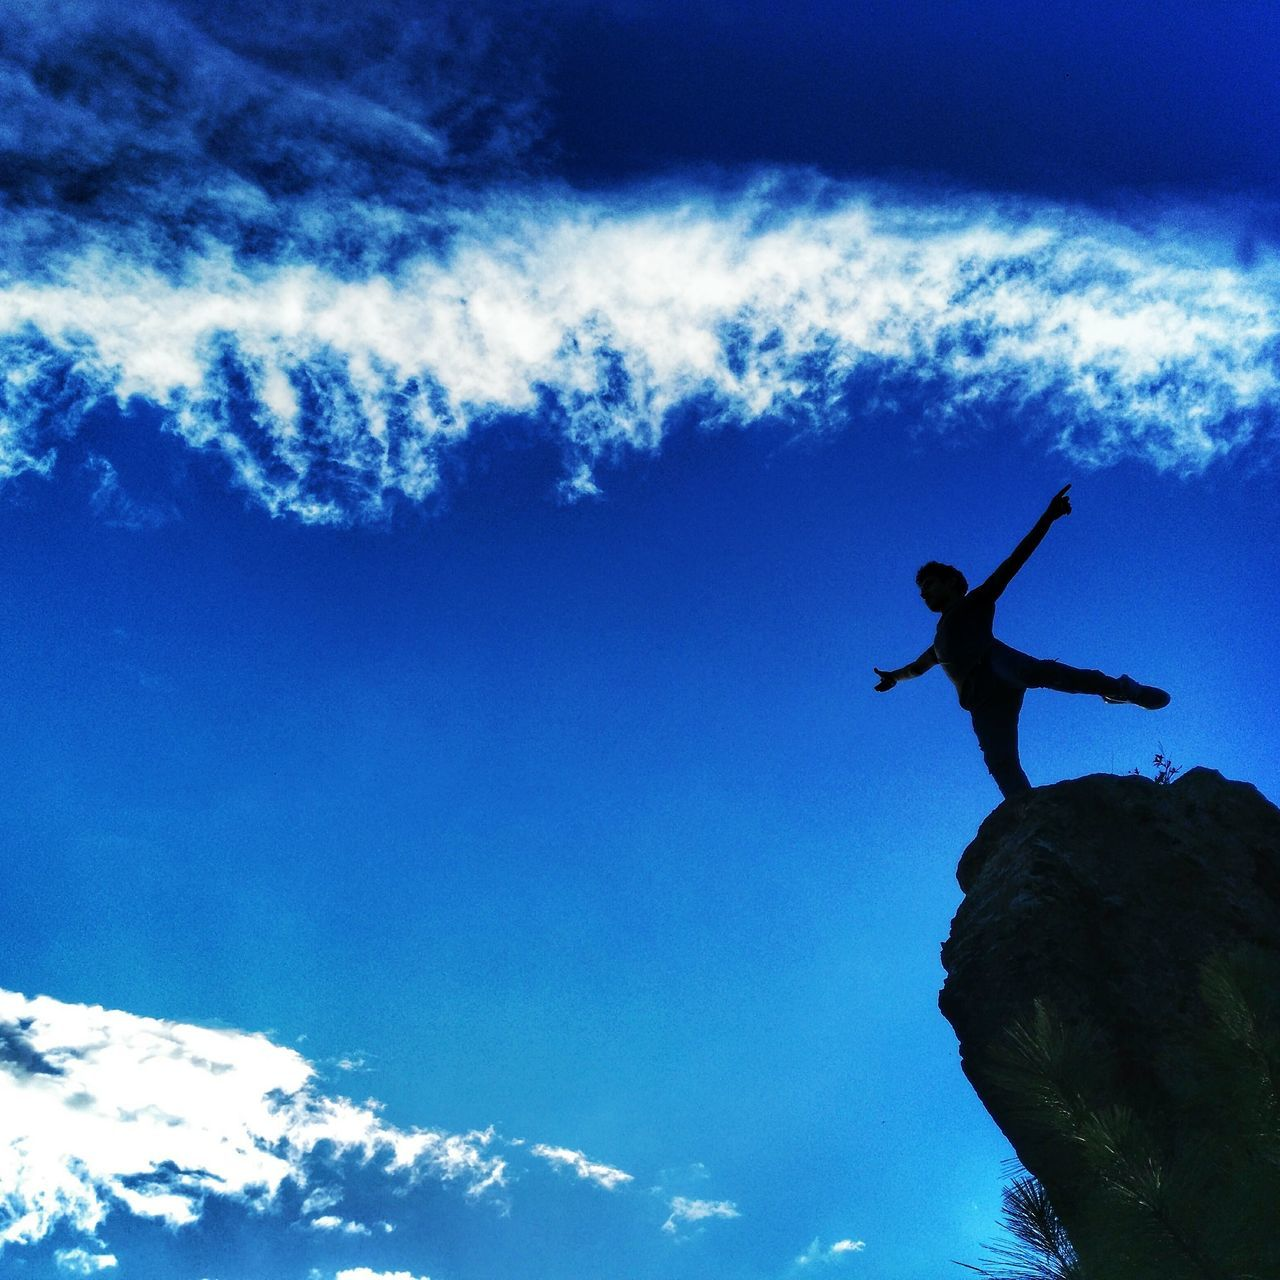 sky, low angle view, one person, cloud - sky, silhouette, full length, day, outdoors, real people, men, adventure, leisure activity, mid-air, blue, lifestyles, nature, climbing, energetic, extreme sports, people